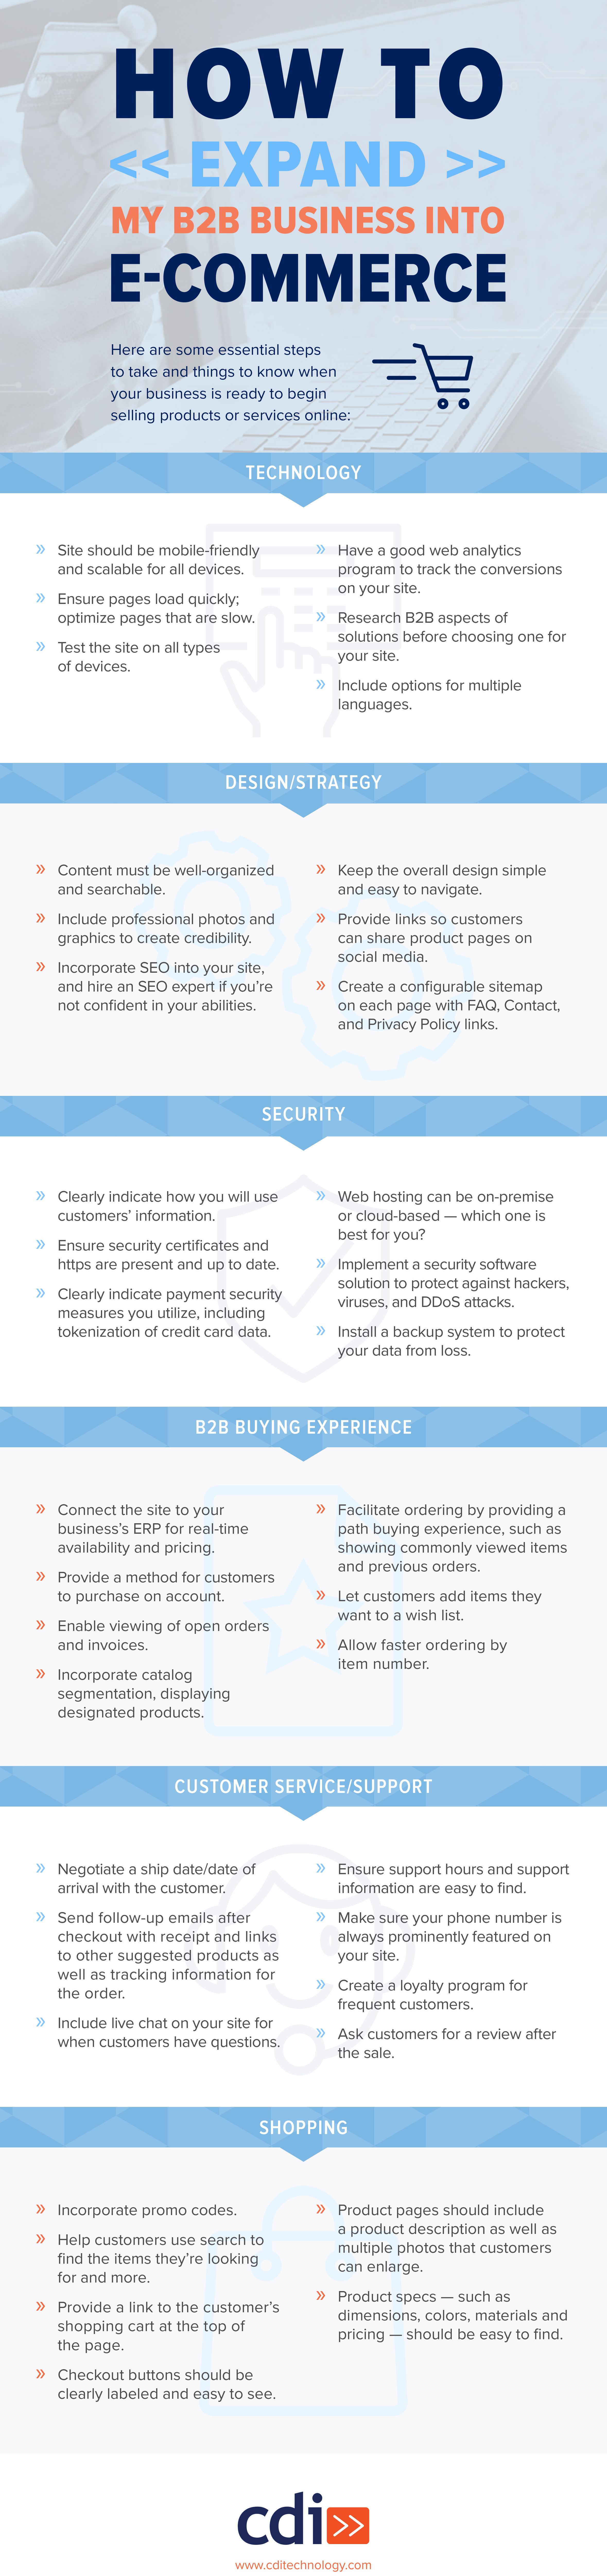 How To Expand B2B Business Into E-Commerce [Infographic]